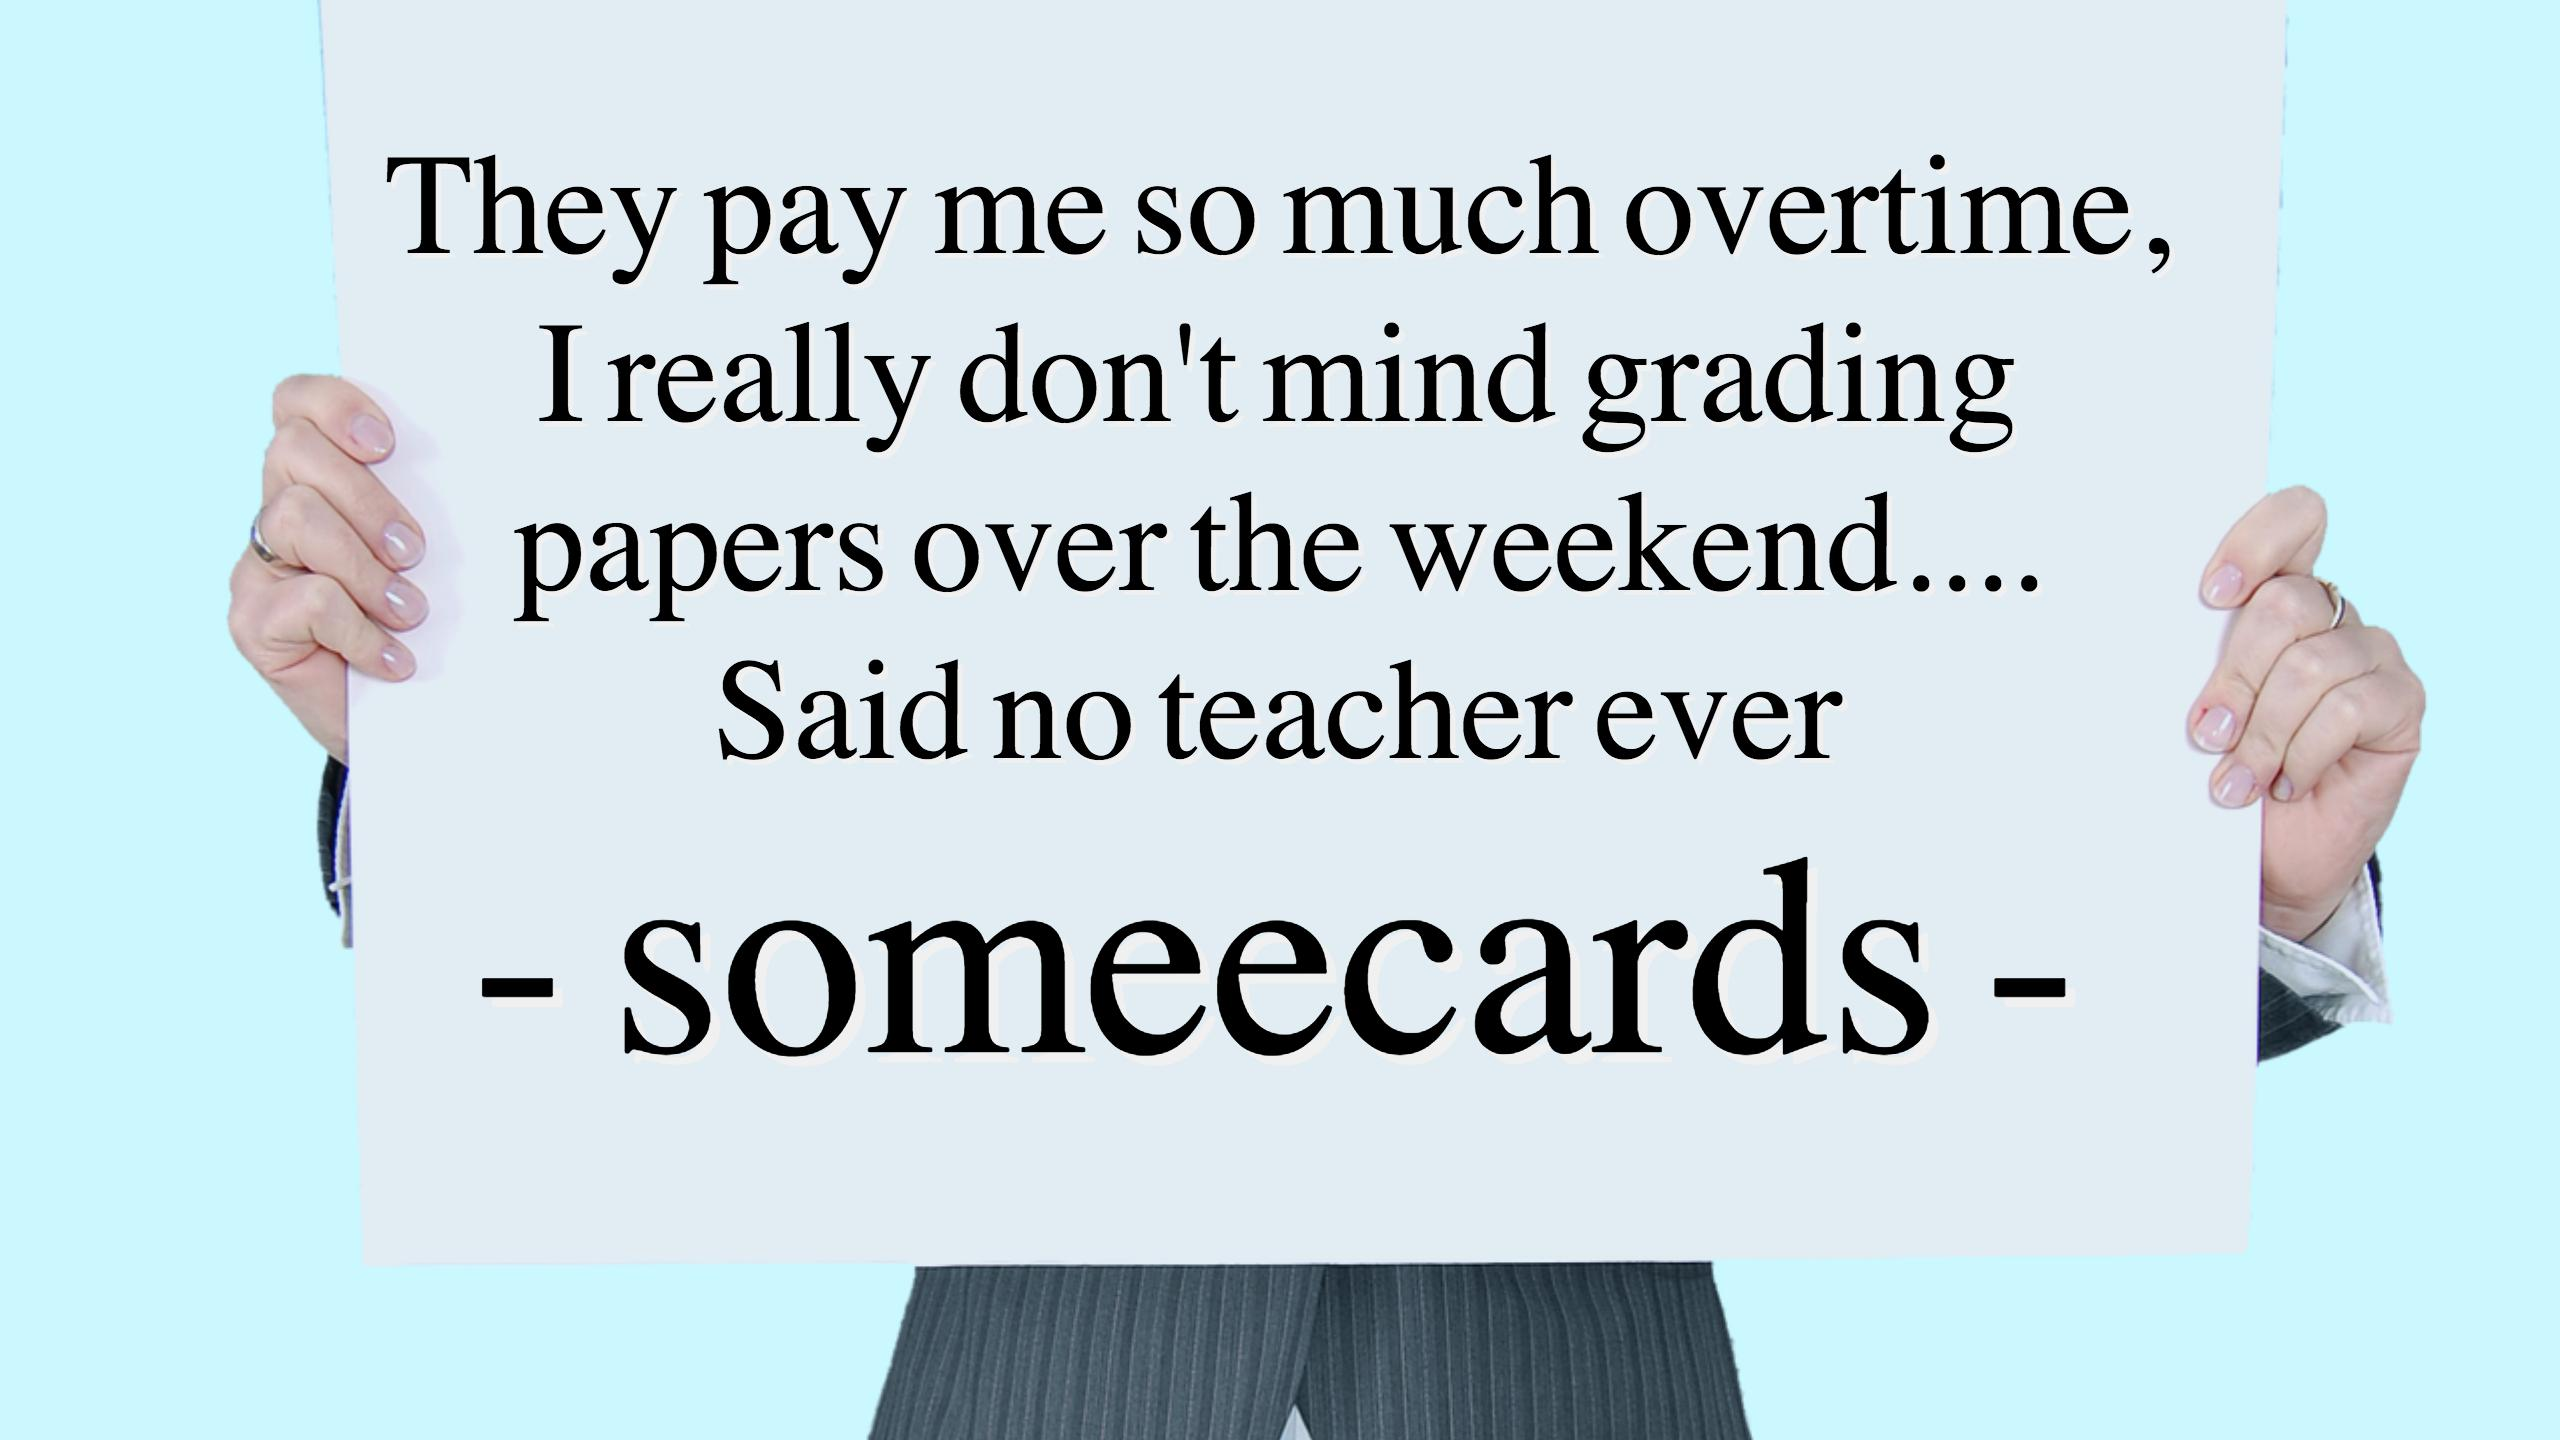 Quote about grading